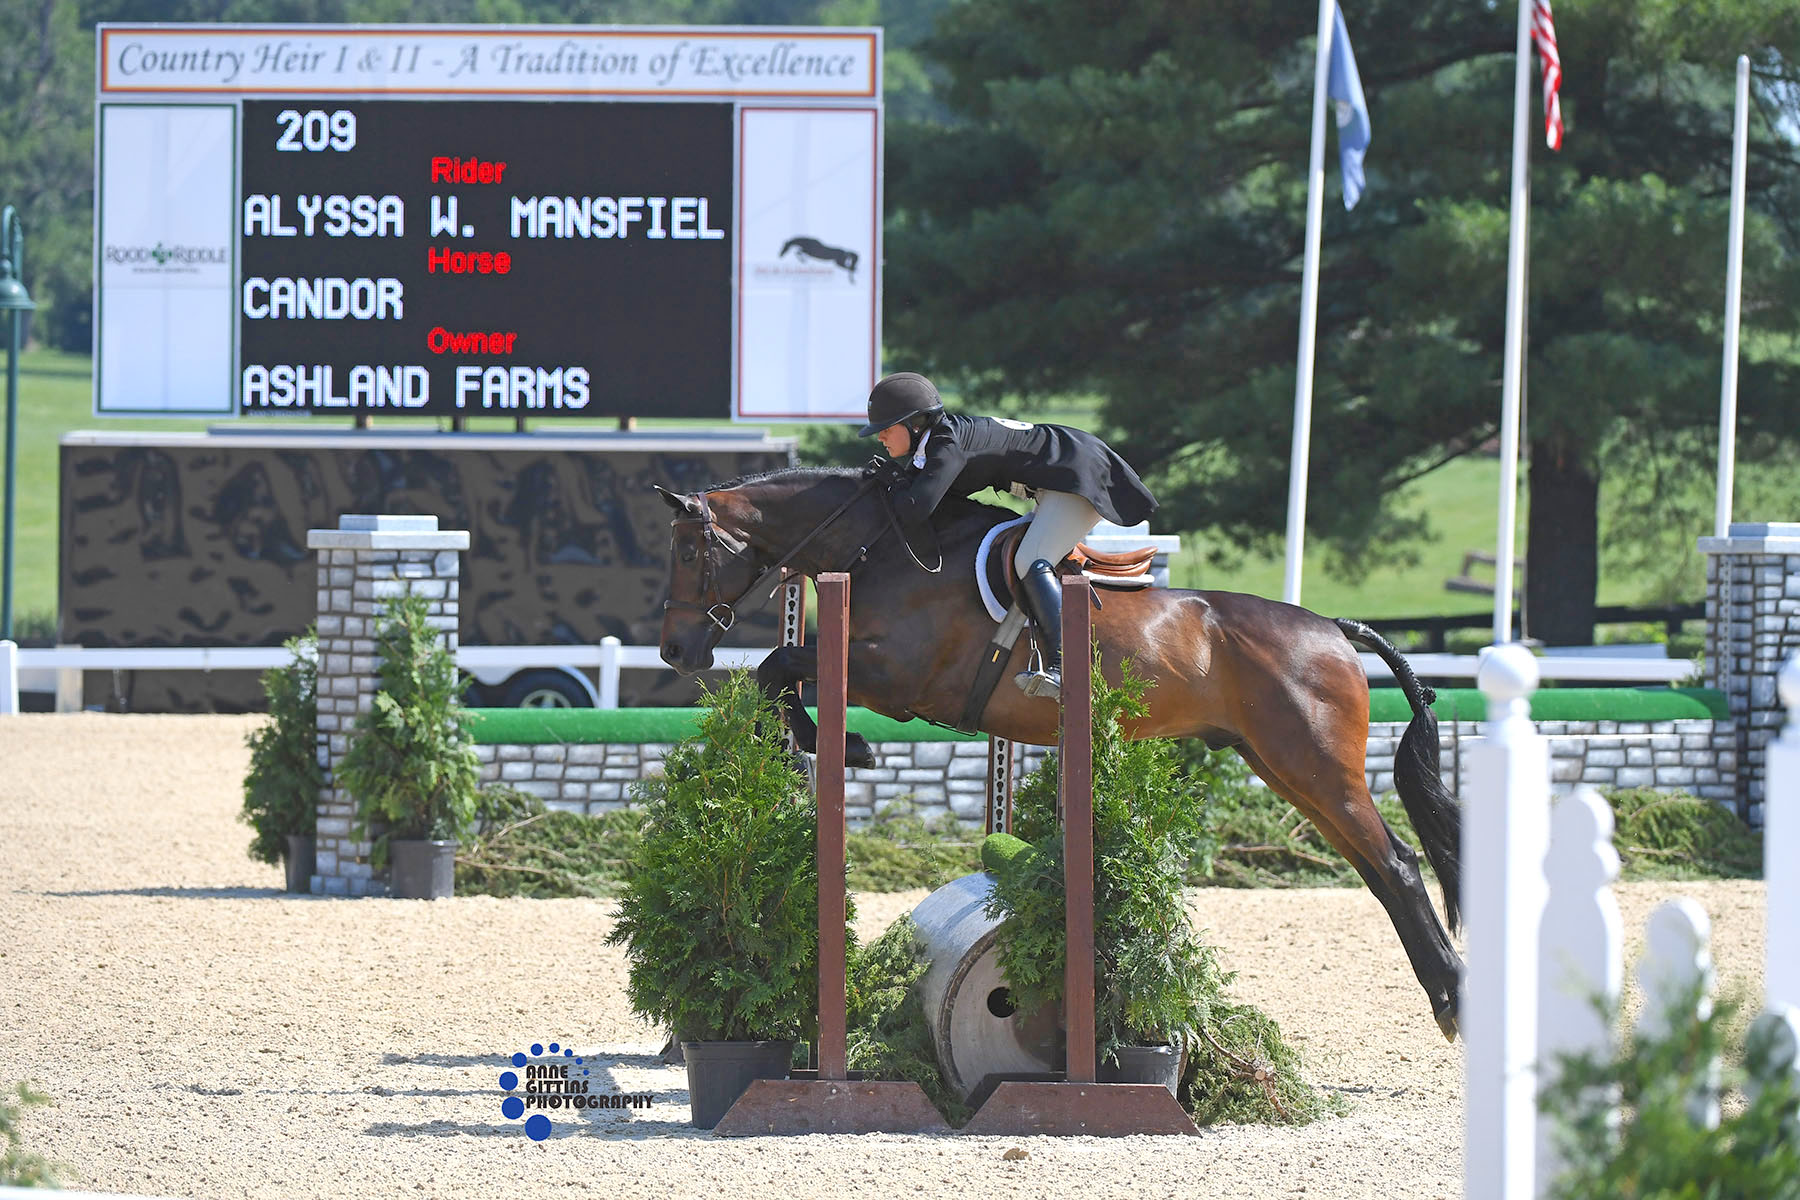 Alyssa Mansfield and Candor, owned by Ashland Farms, won the  non-professional section of the $40,000 USHJA National Hunter Derby  during Country Heir II in 2018. Photo by Anne Gittins Photography